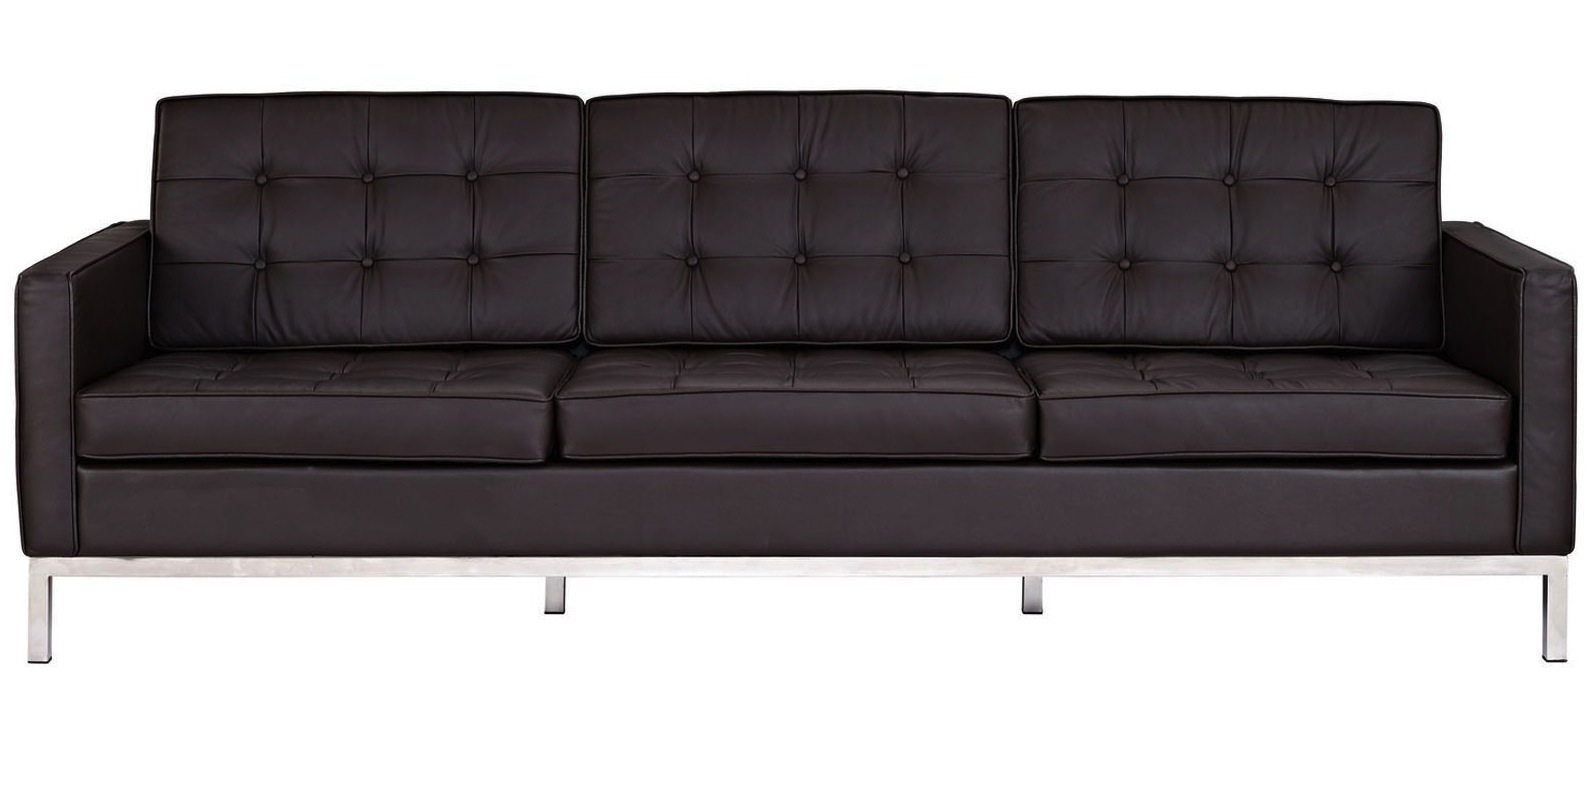 leather office couch. florencesofainbrownleatherjpg leather office couch a